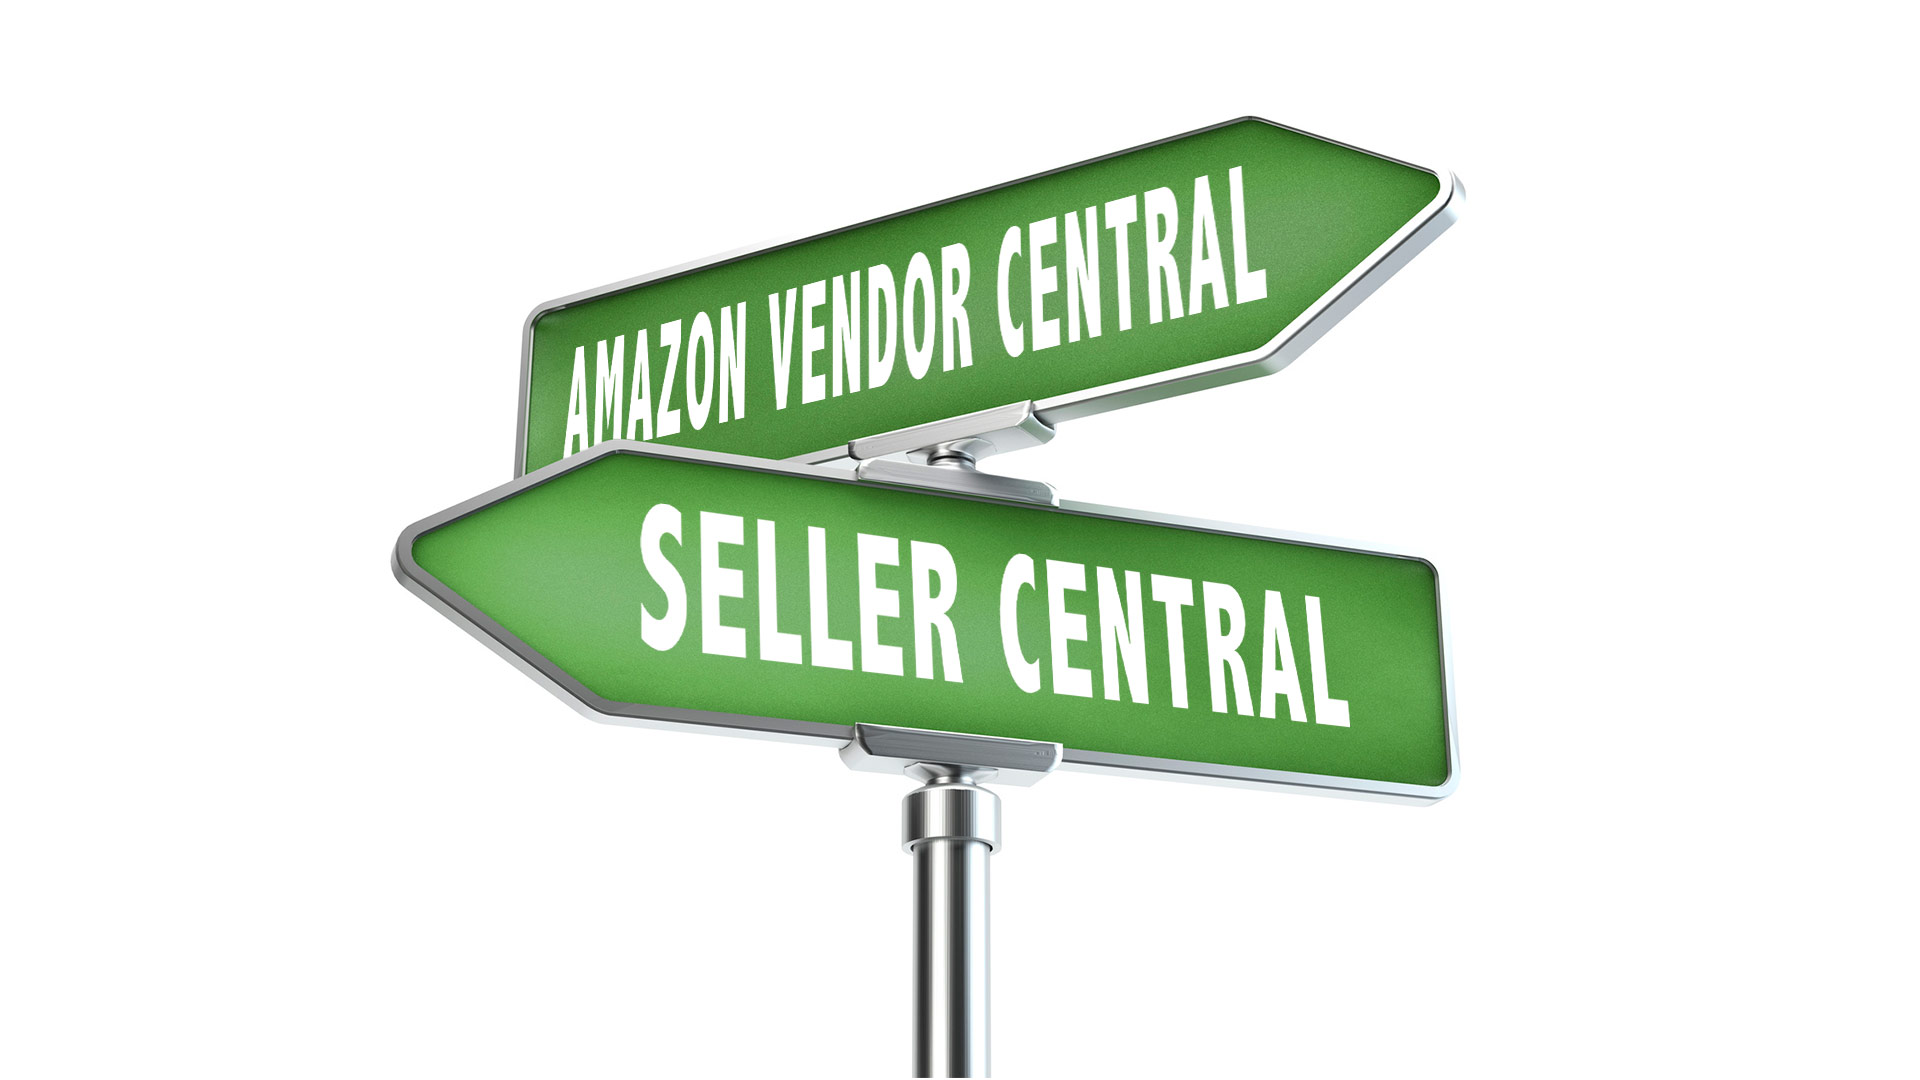 Vendor Central Seller Central Amazon